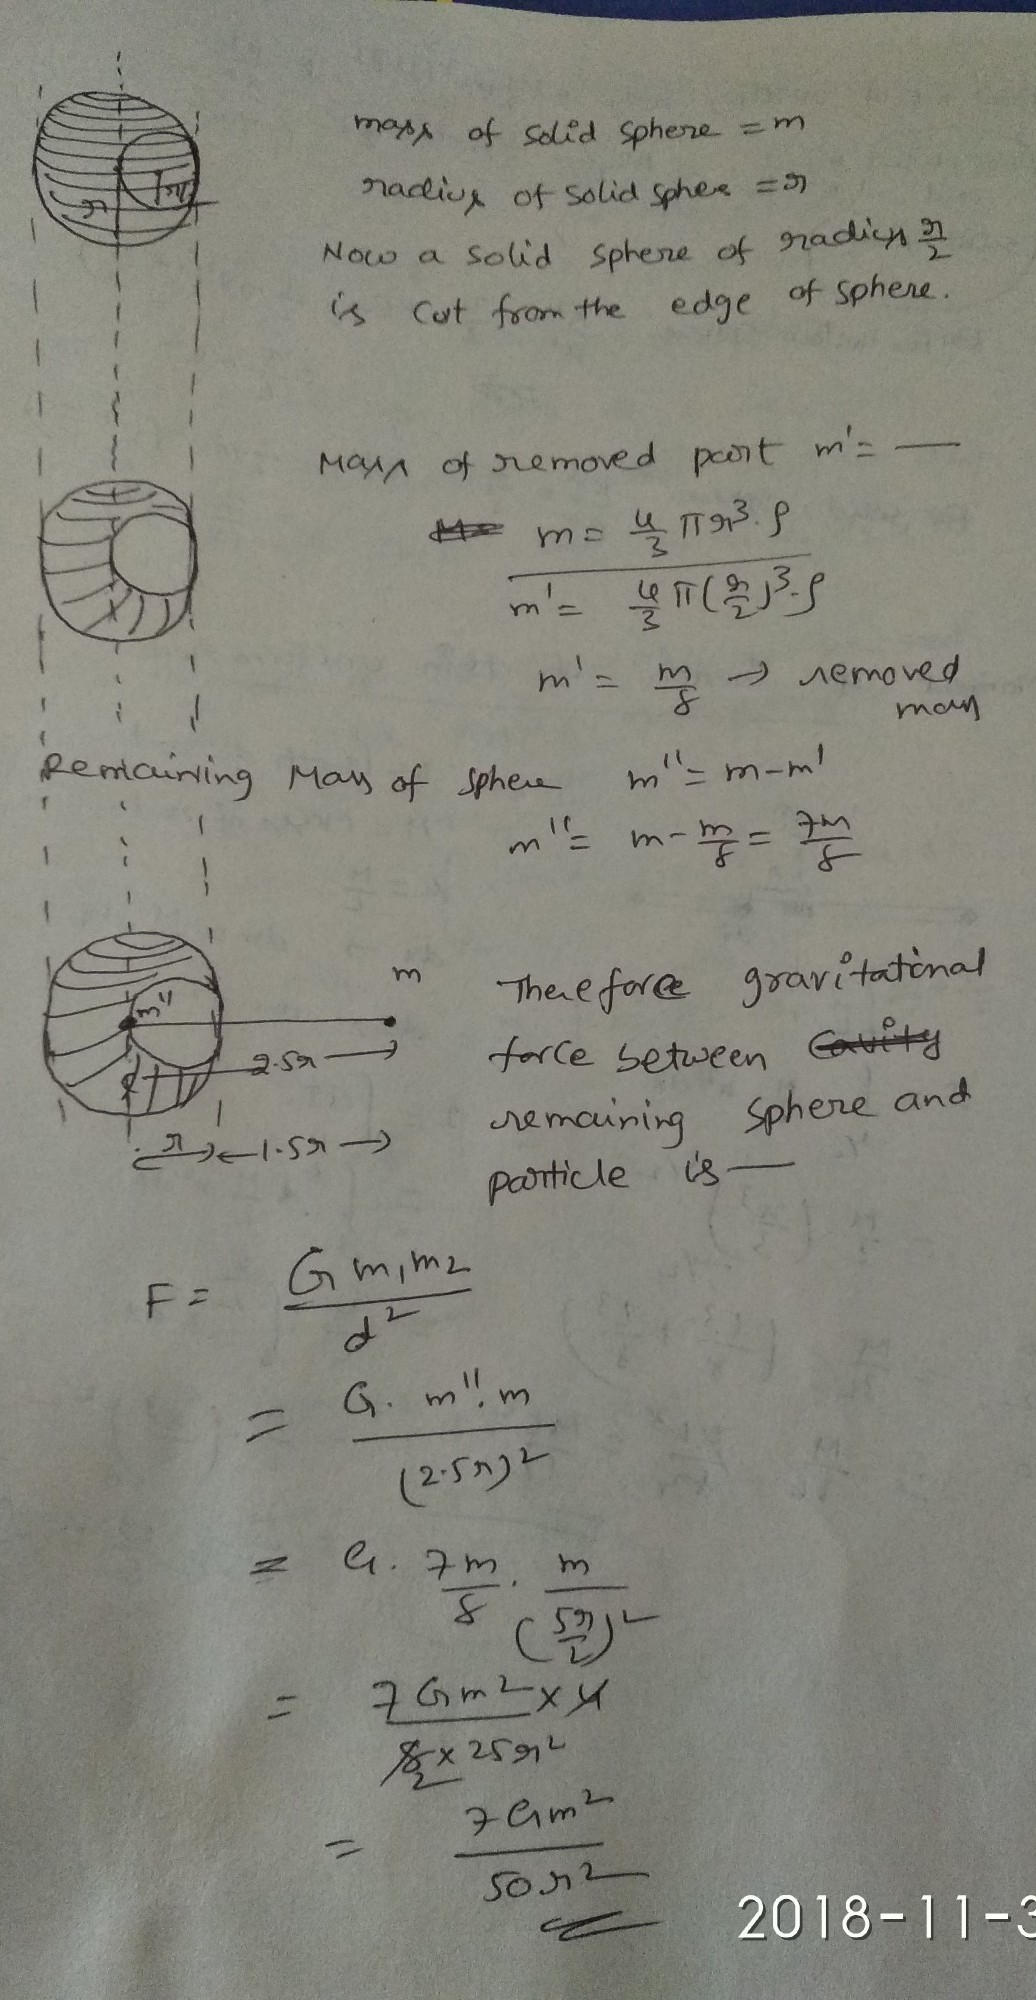 A solid sphere of radius r/2 is cut out of a solid sphere of radius